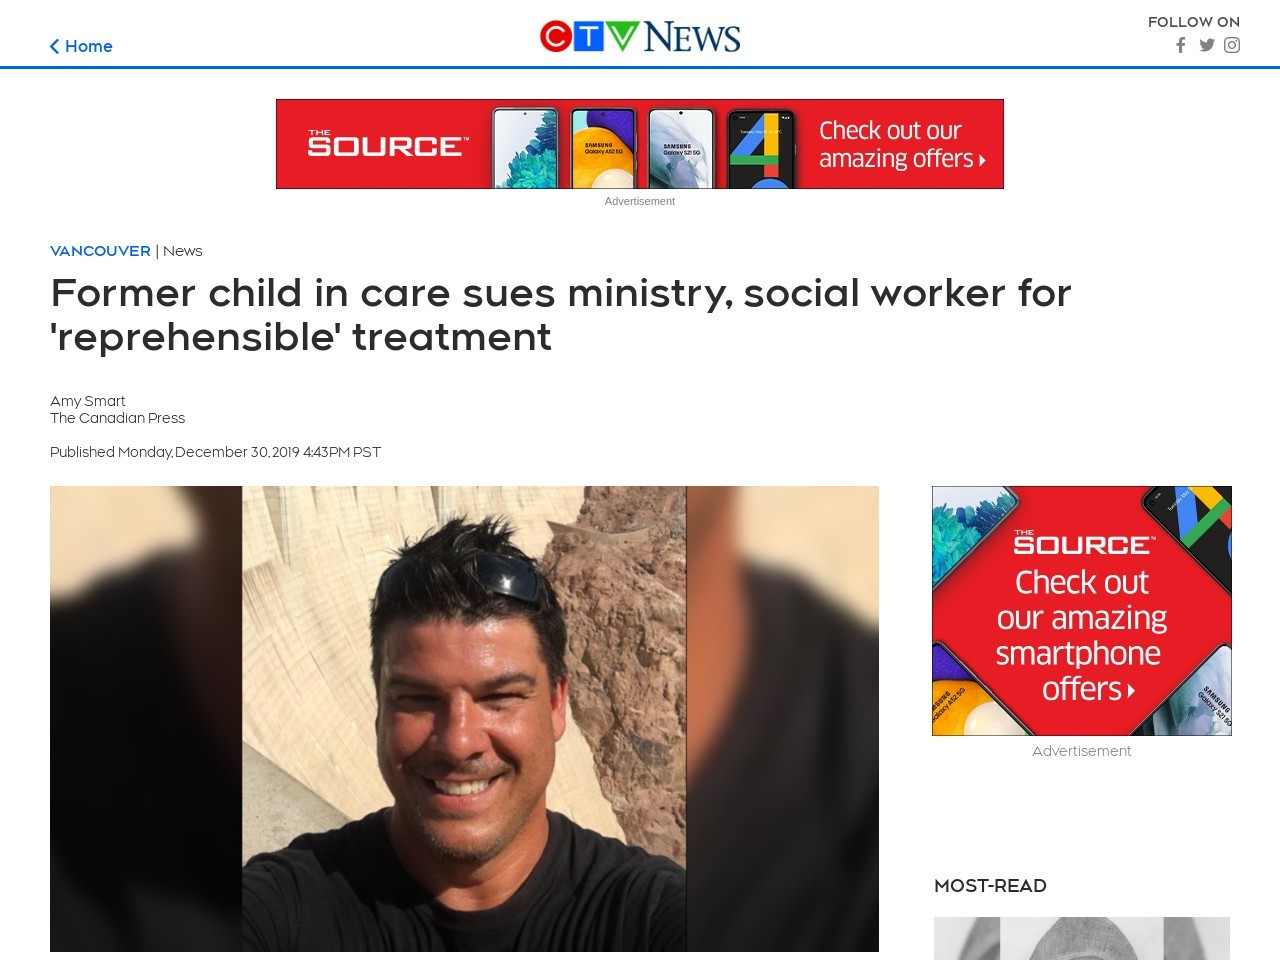 Former child in care sues ministry, social worker for 'reprehensible' treatment